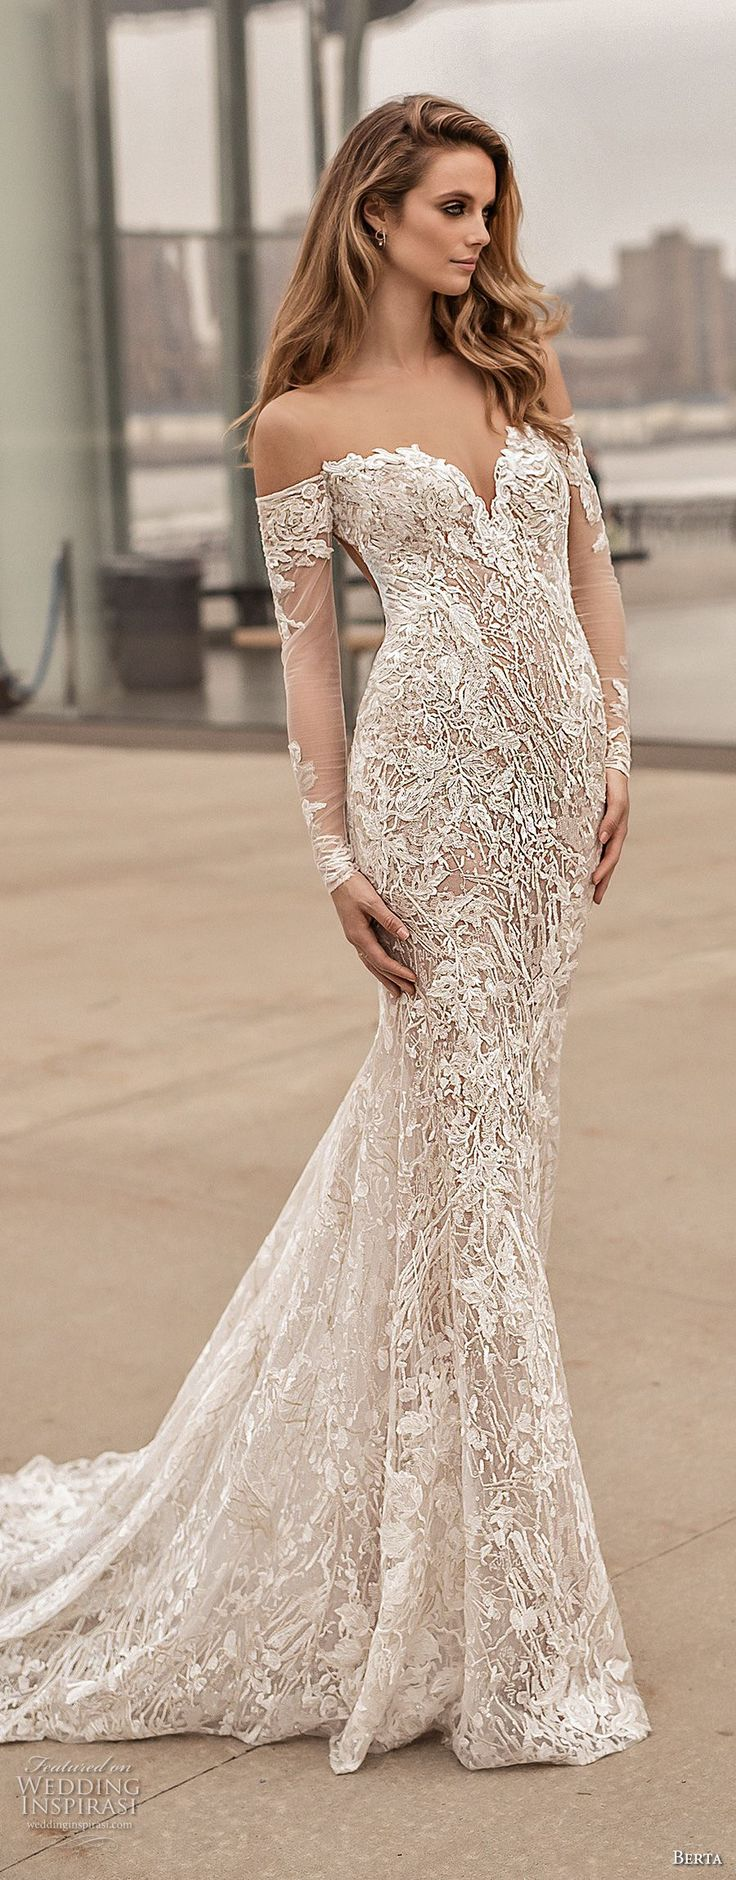 berta spring 2018 bridal long sleeves off the shoulder sweetheart neckline full embellishment sexy elegant fit and flare wedding dress open low back medium train (3) mv -- Berta Spring 2018 Wedding Dresses